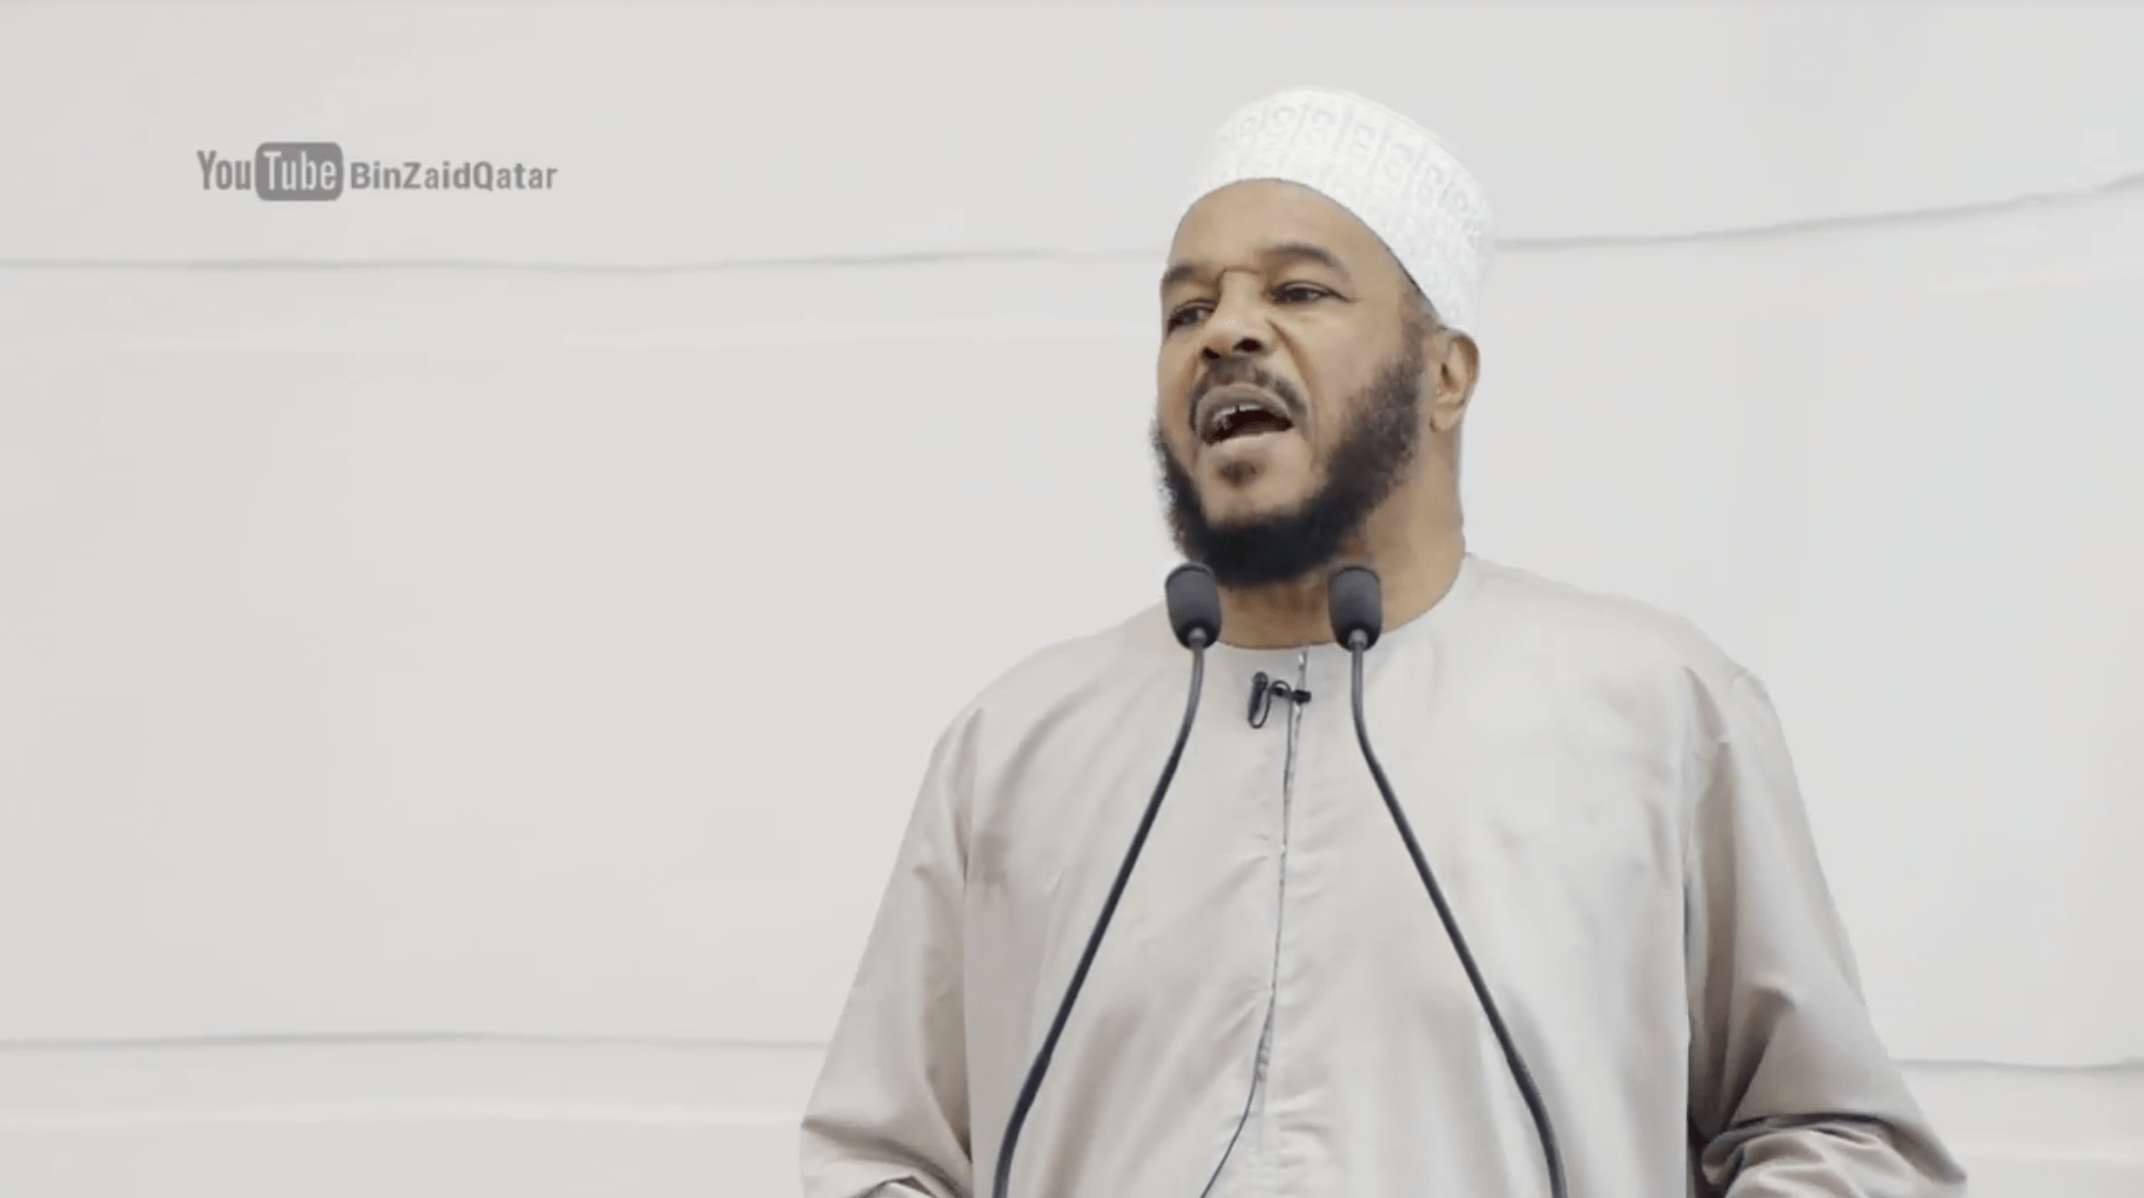 Bilal Philips – Balancing between Religion and Worldly Matters